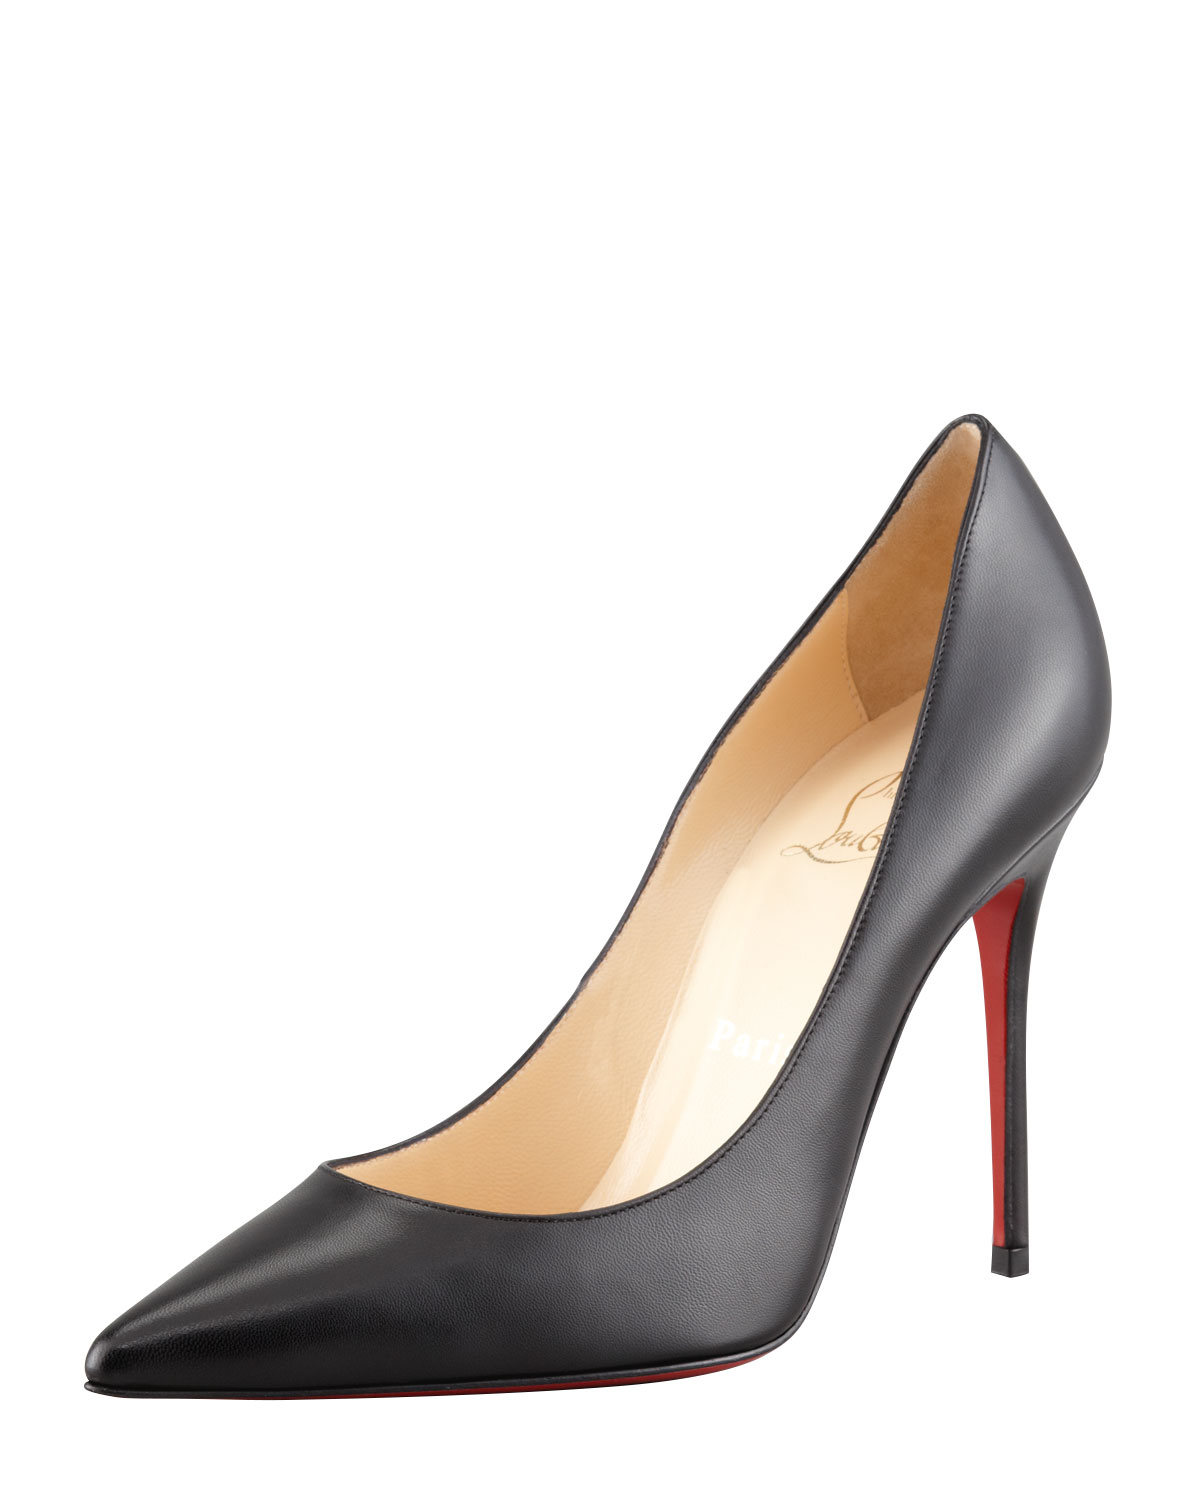 Decollette Pointed-Toe Red Sole Pump, Black - Christian Louboutin